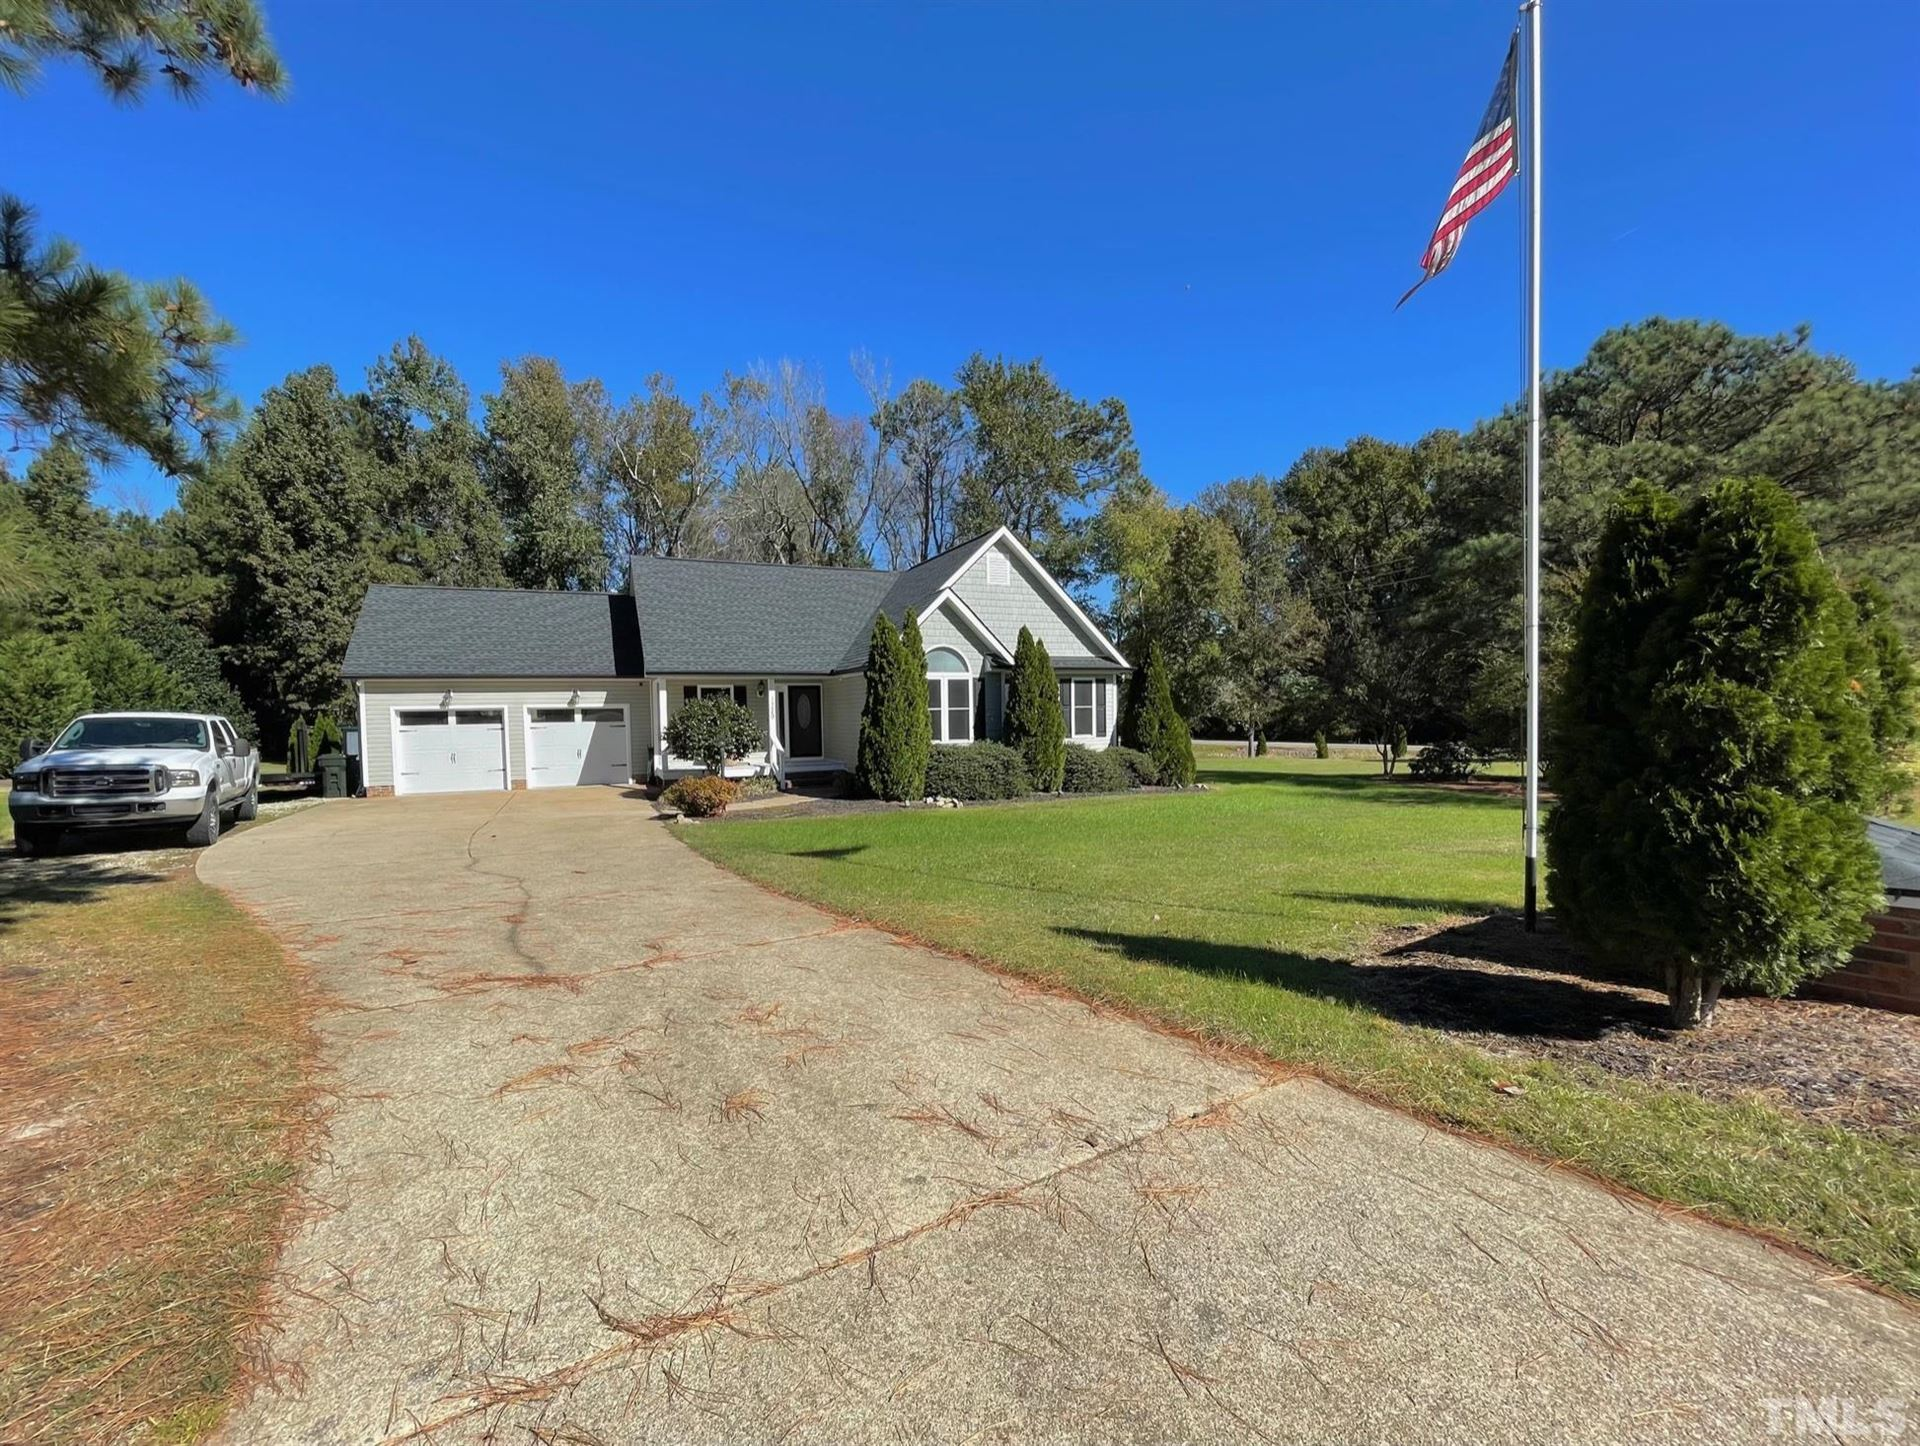 Photo of 1729 Quail Grove Street, Willow Spring(s), NC 27592-9349 (MLS # 2415778)